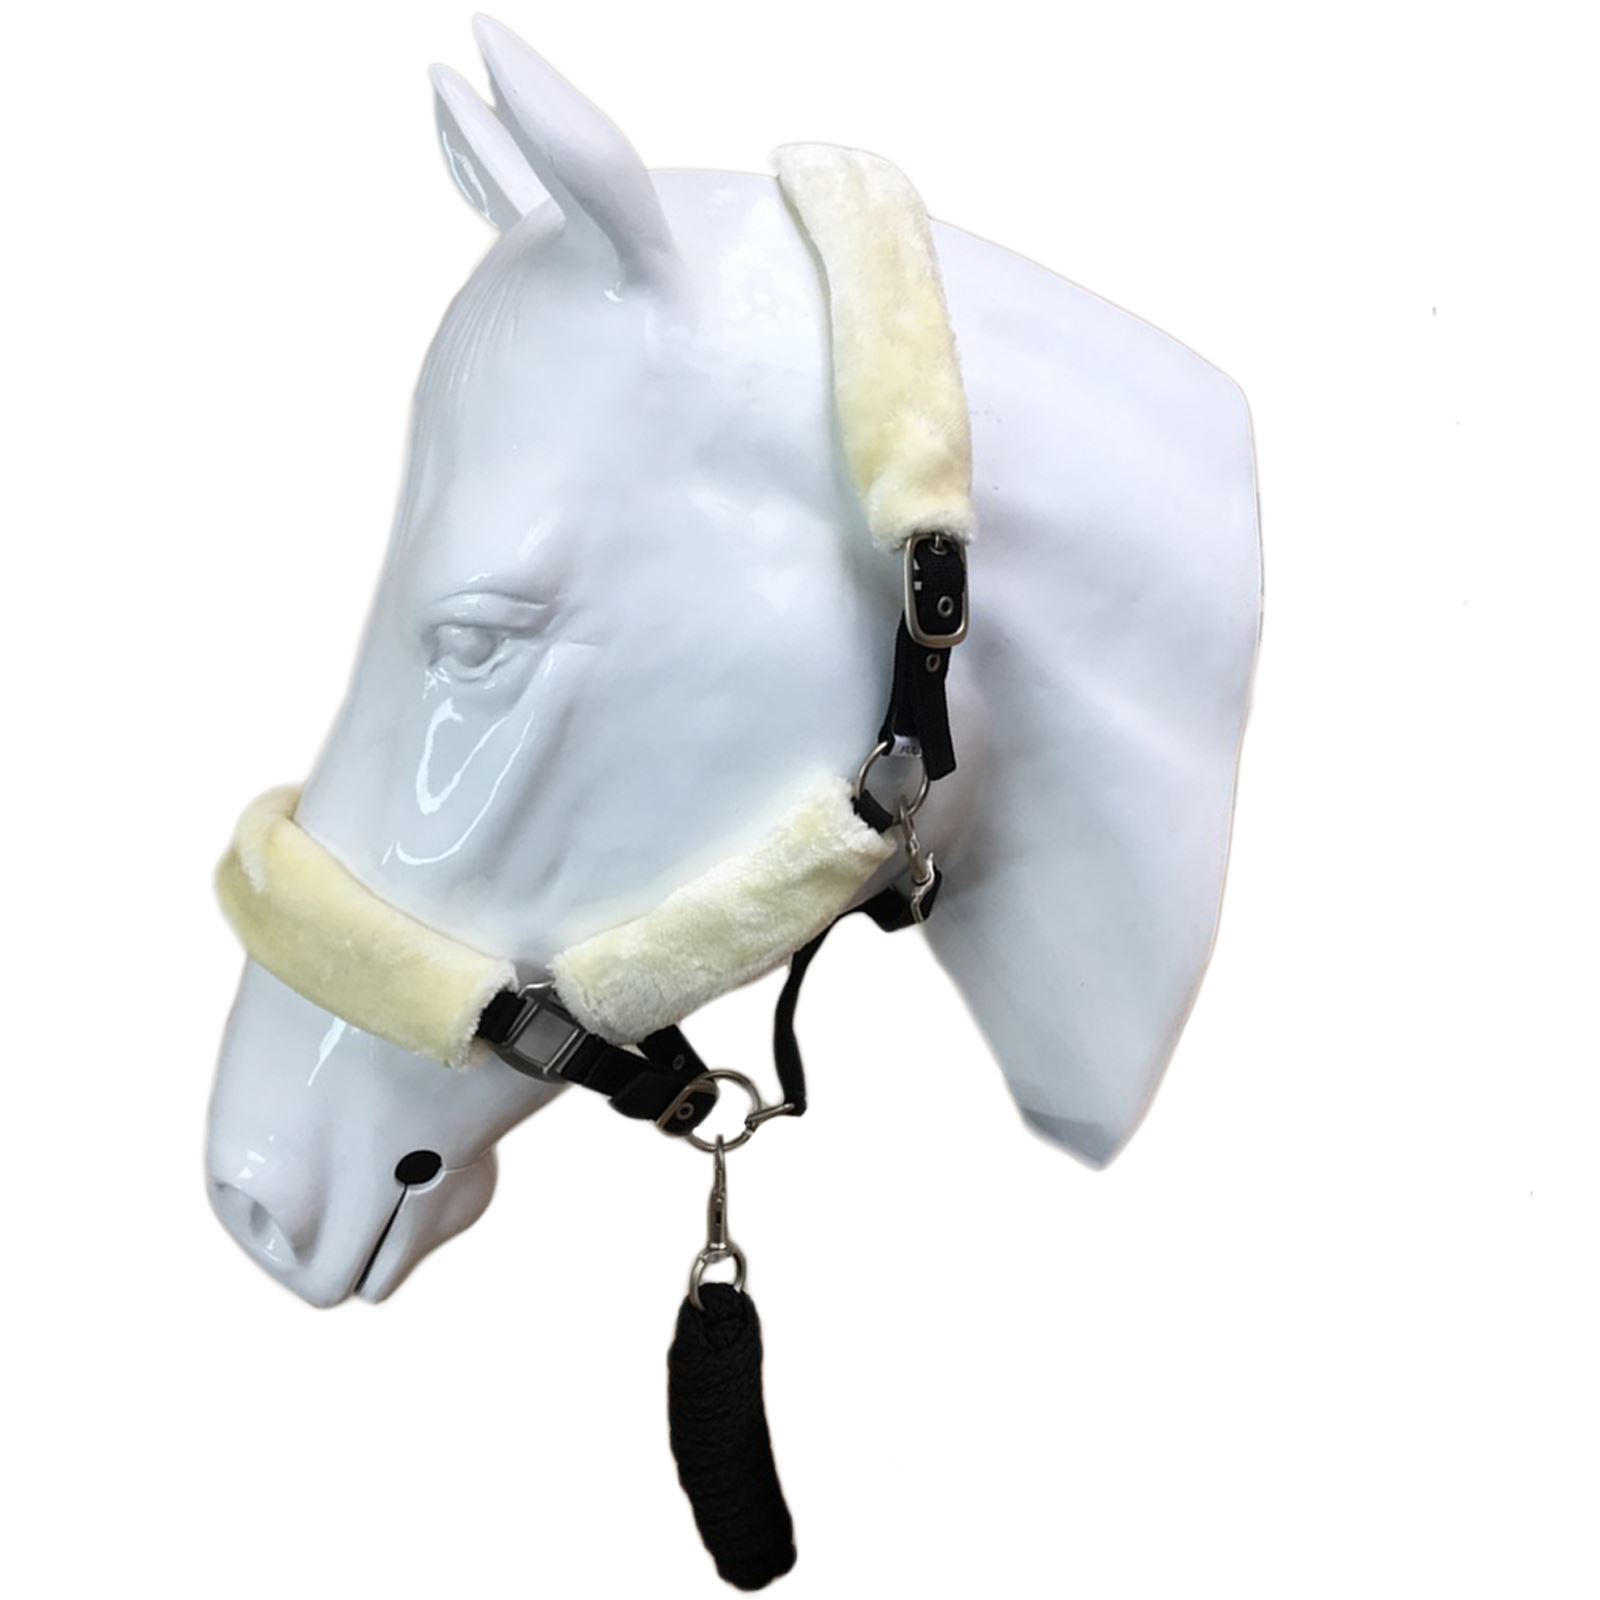 Equestrian Stable Yard Pony Cob Full Soft Leather Headcollar Name Plate